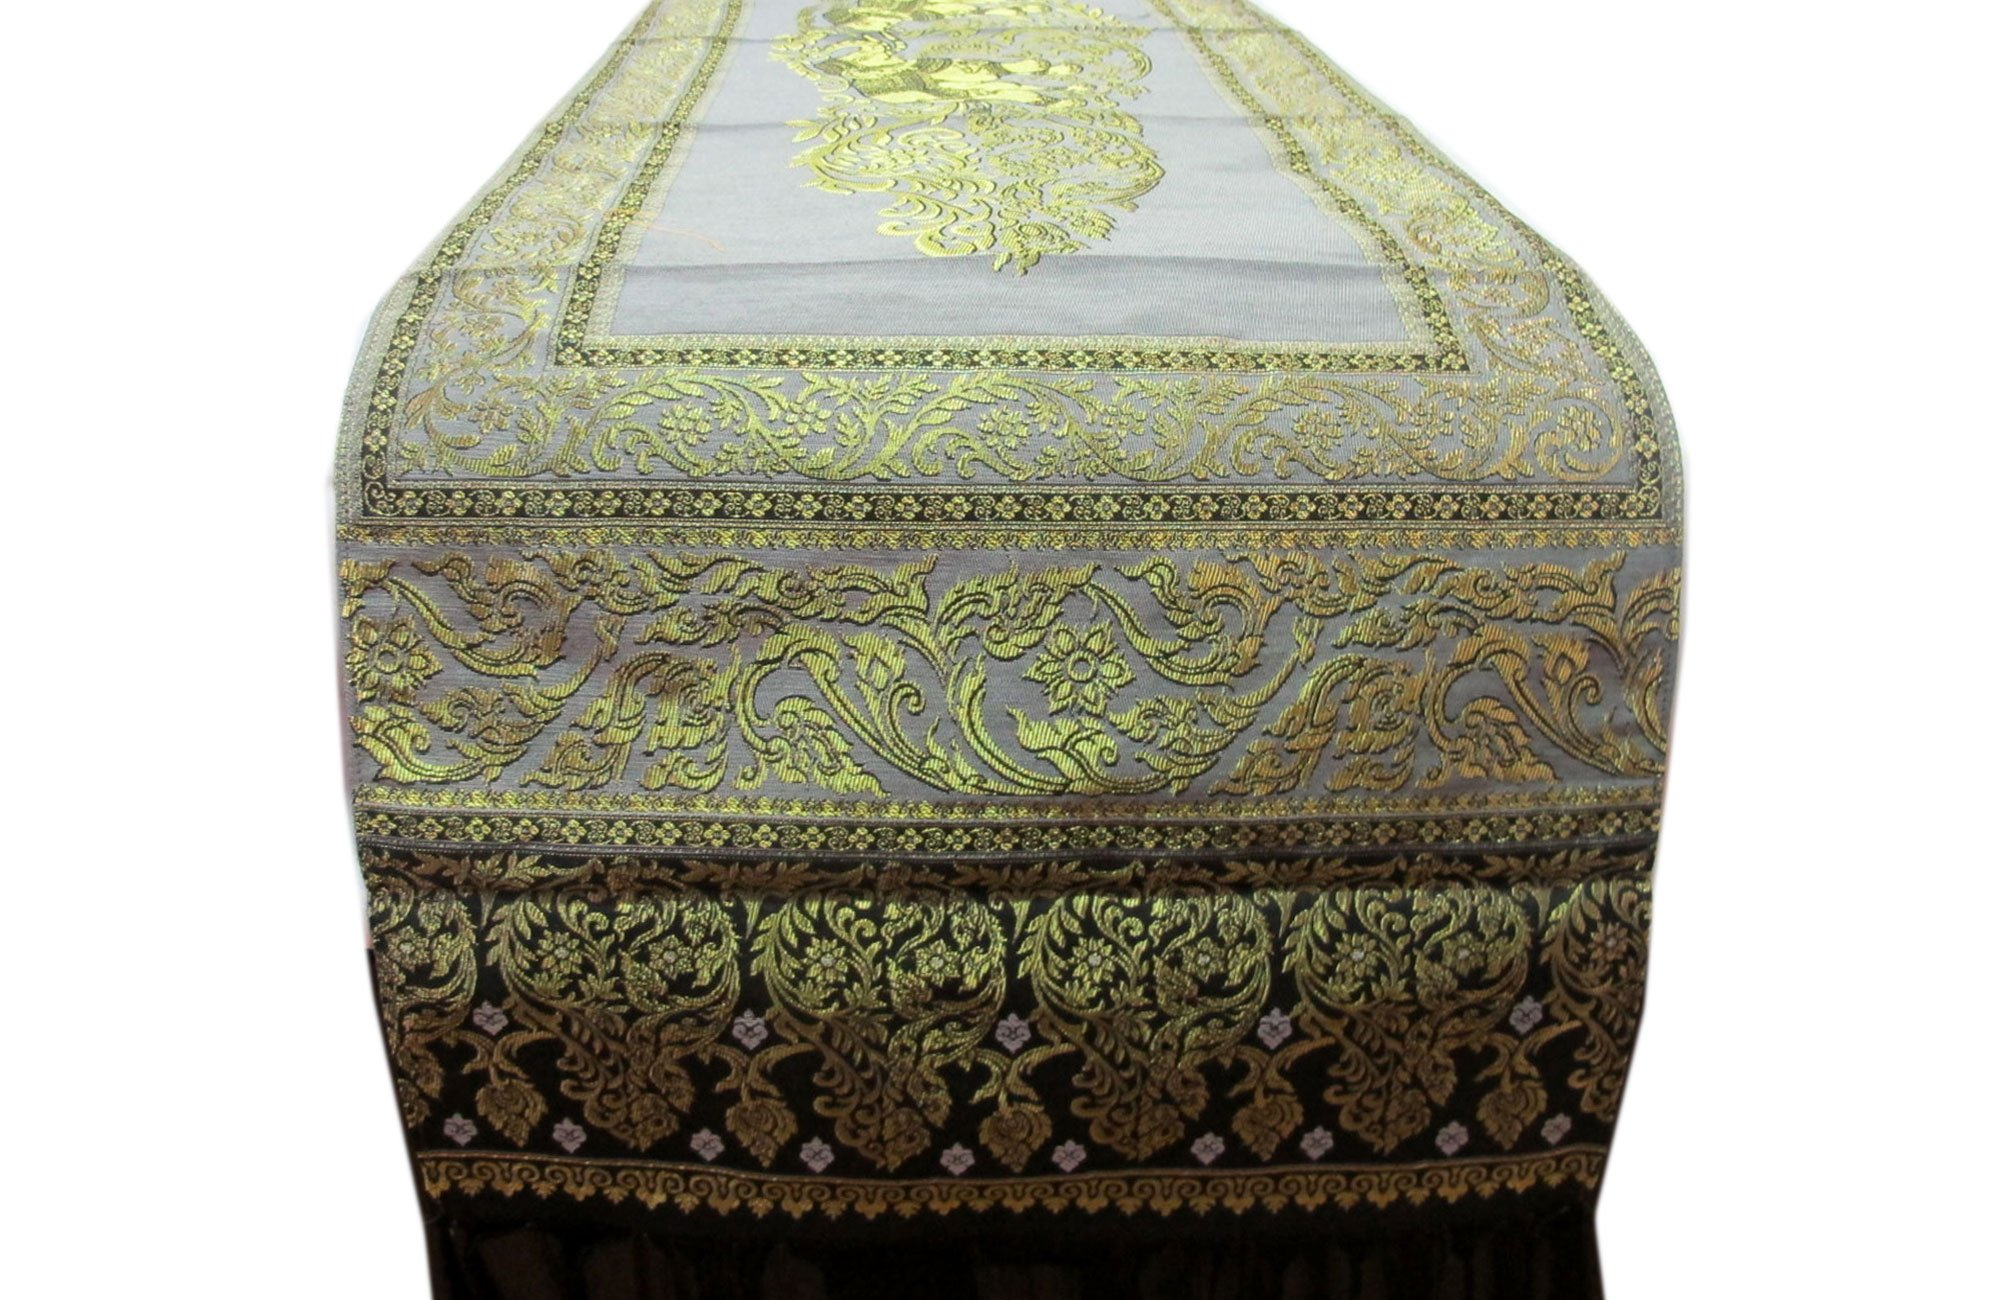 BEAUTIFUL THAI SILK TABLE/BED RUNNER WIDTH 19 INCHES LENGTH 72 INCHES